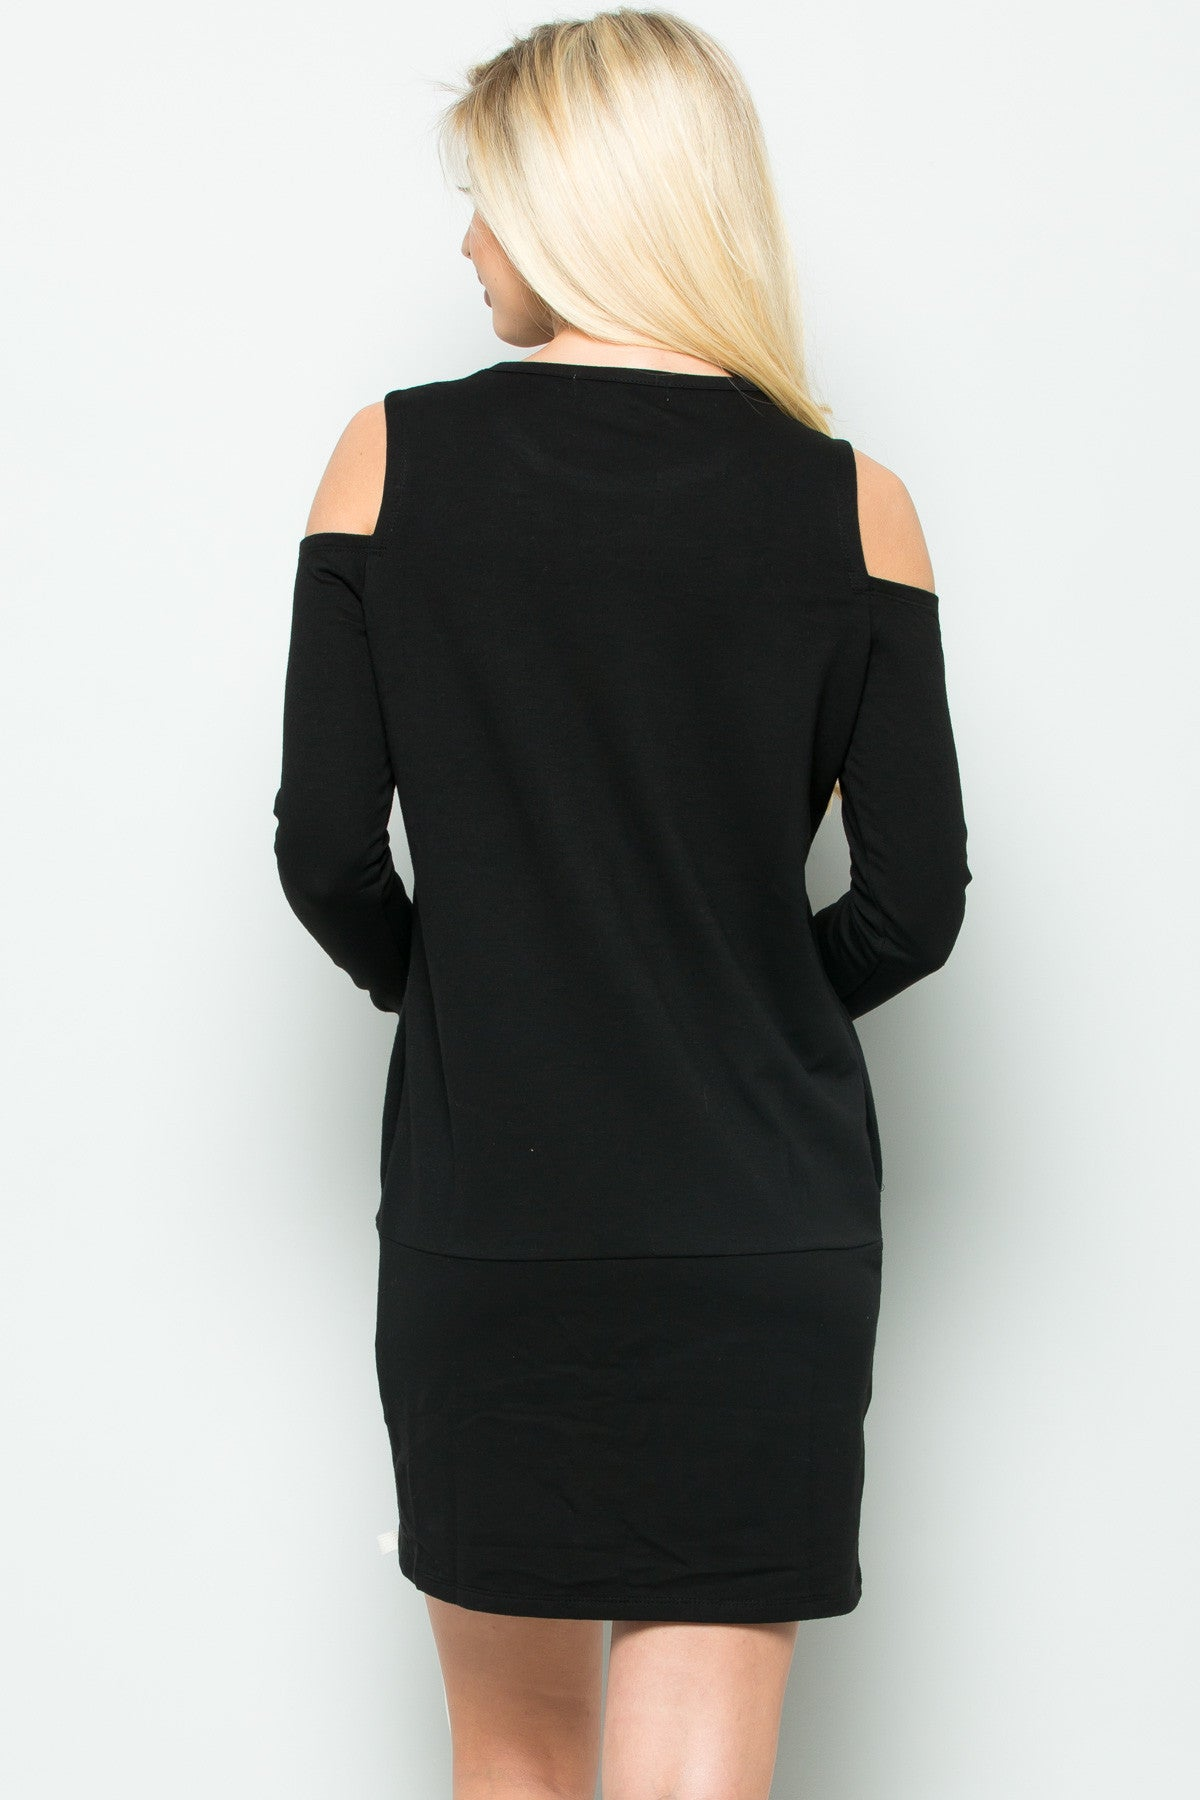 Cold Shoulder Lace Up Sweater Dress in Black - Dresses - My Yuccie - 3